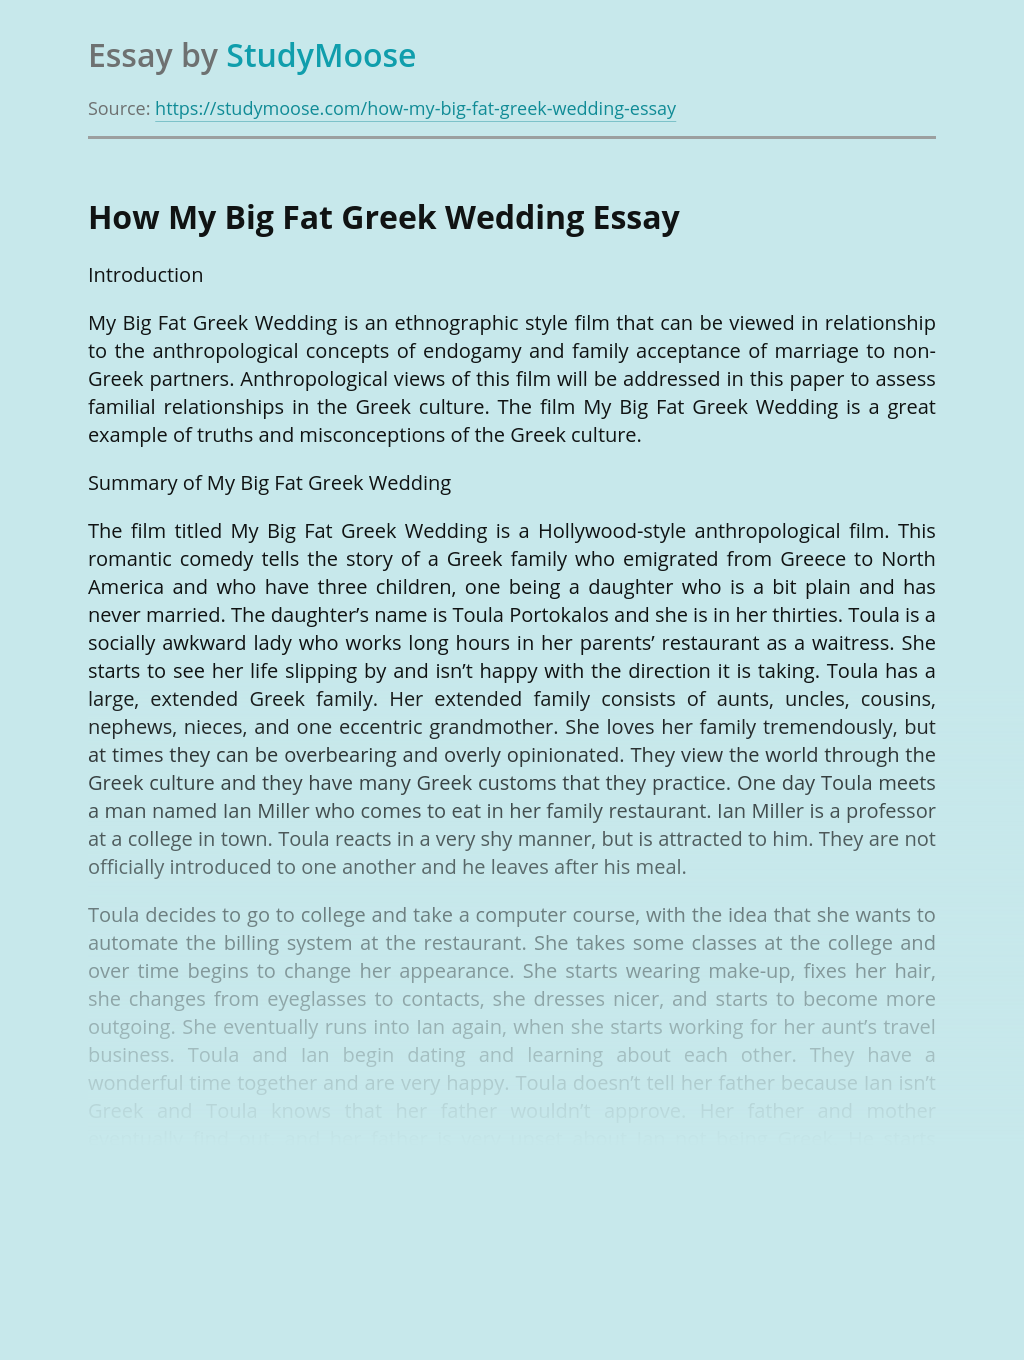 How My Big Fat Greek Wedding